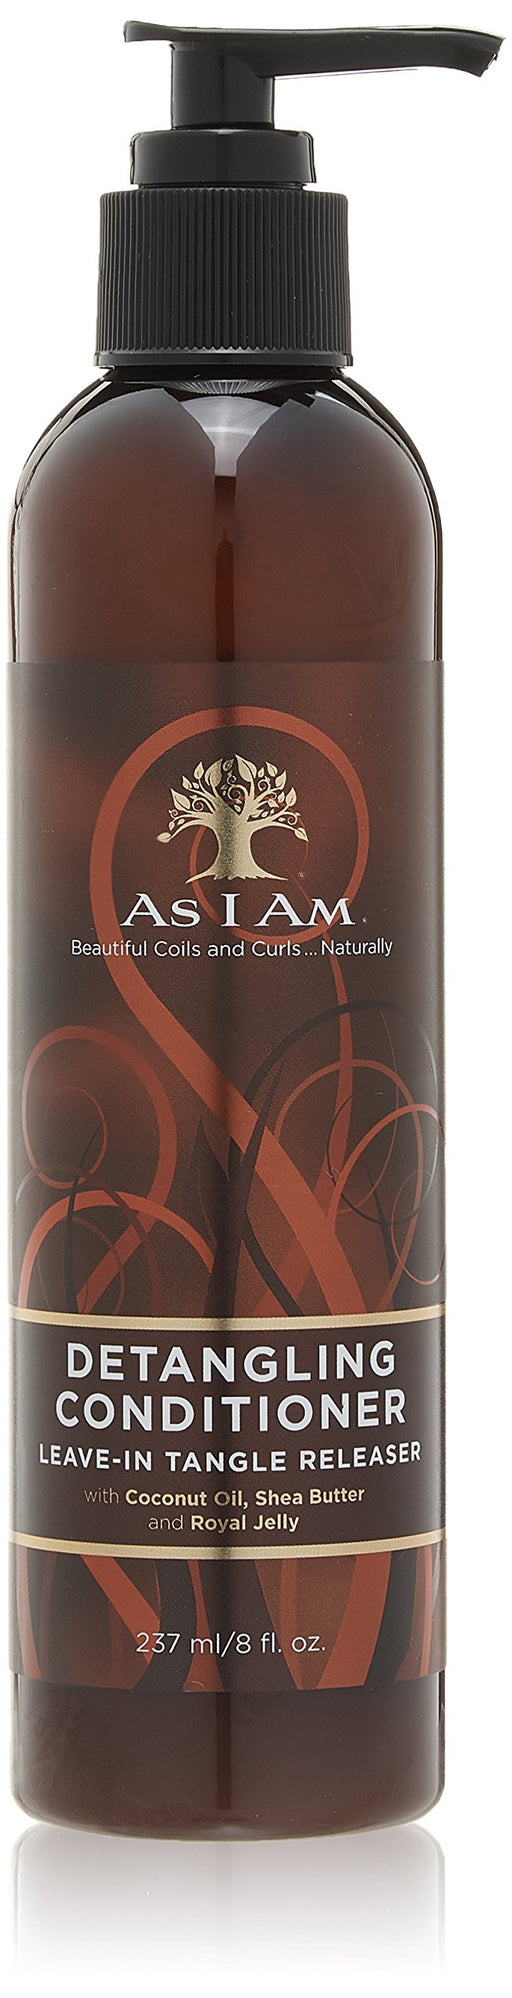 As I Am Detangling Conditioner Leave-In Tangle Releaser 8 oz.